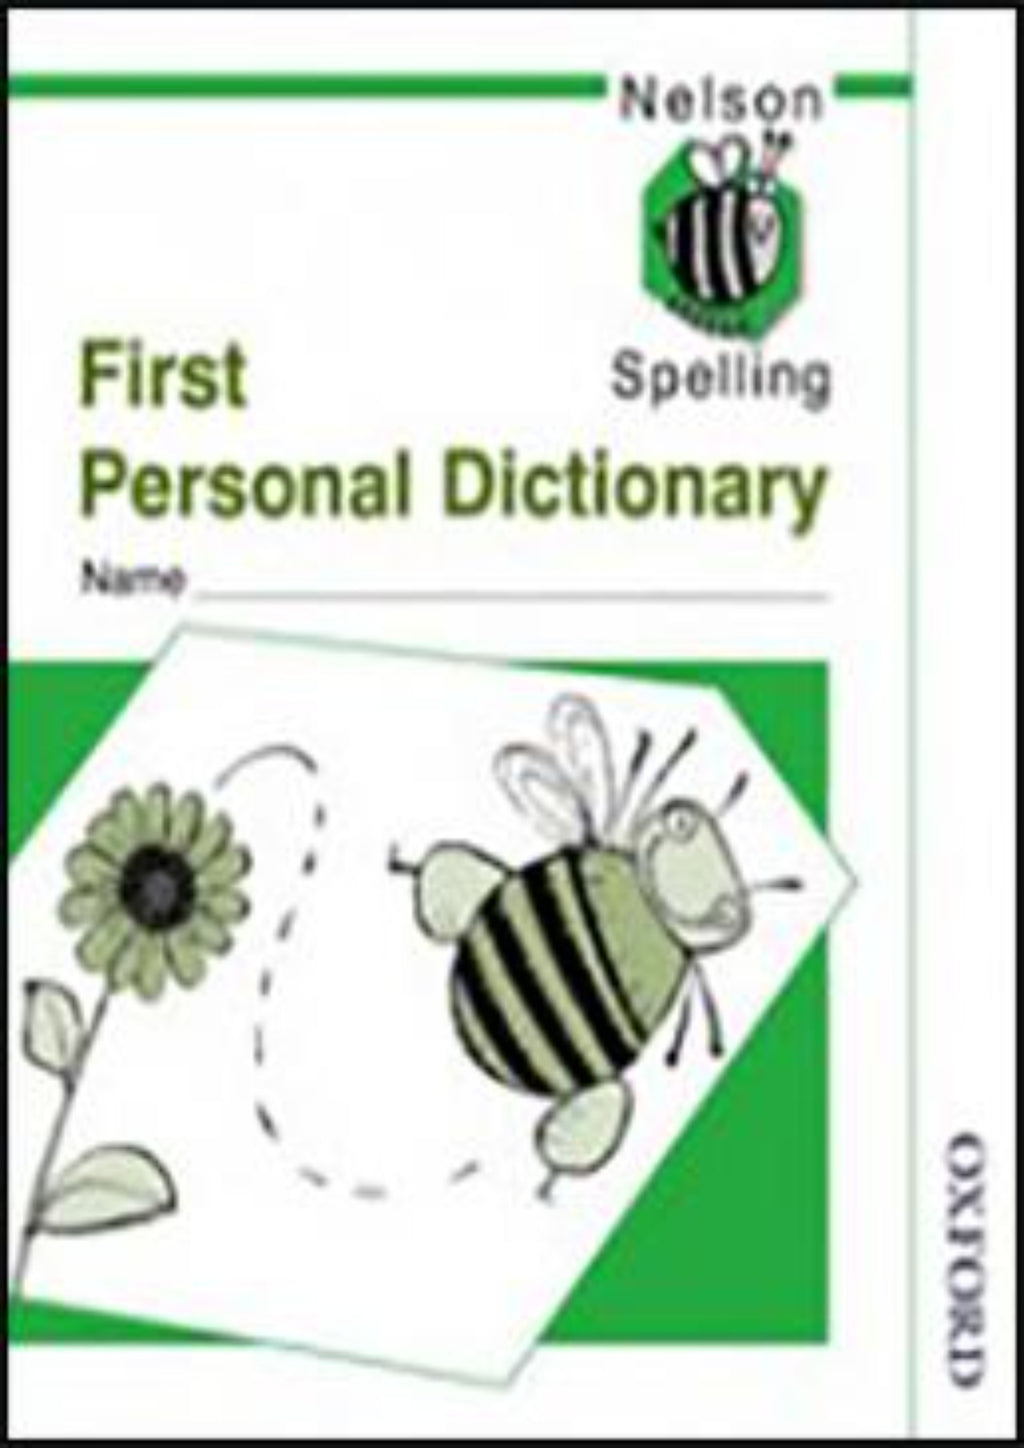 Nelson Spelling First Personal Dictionary